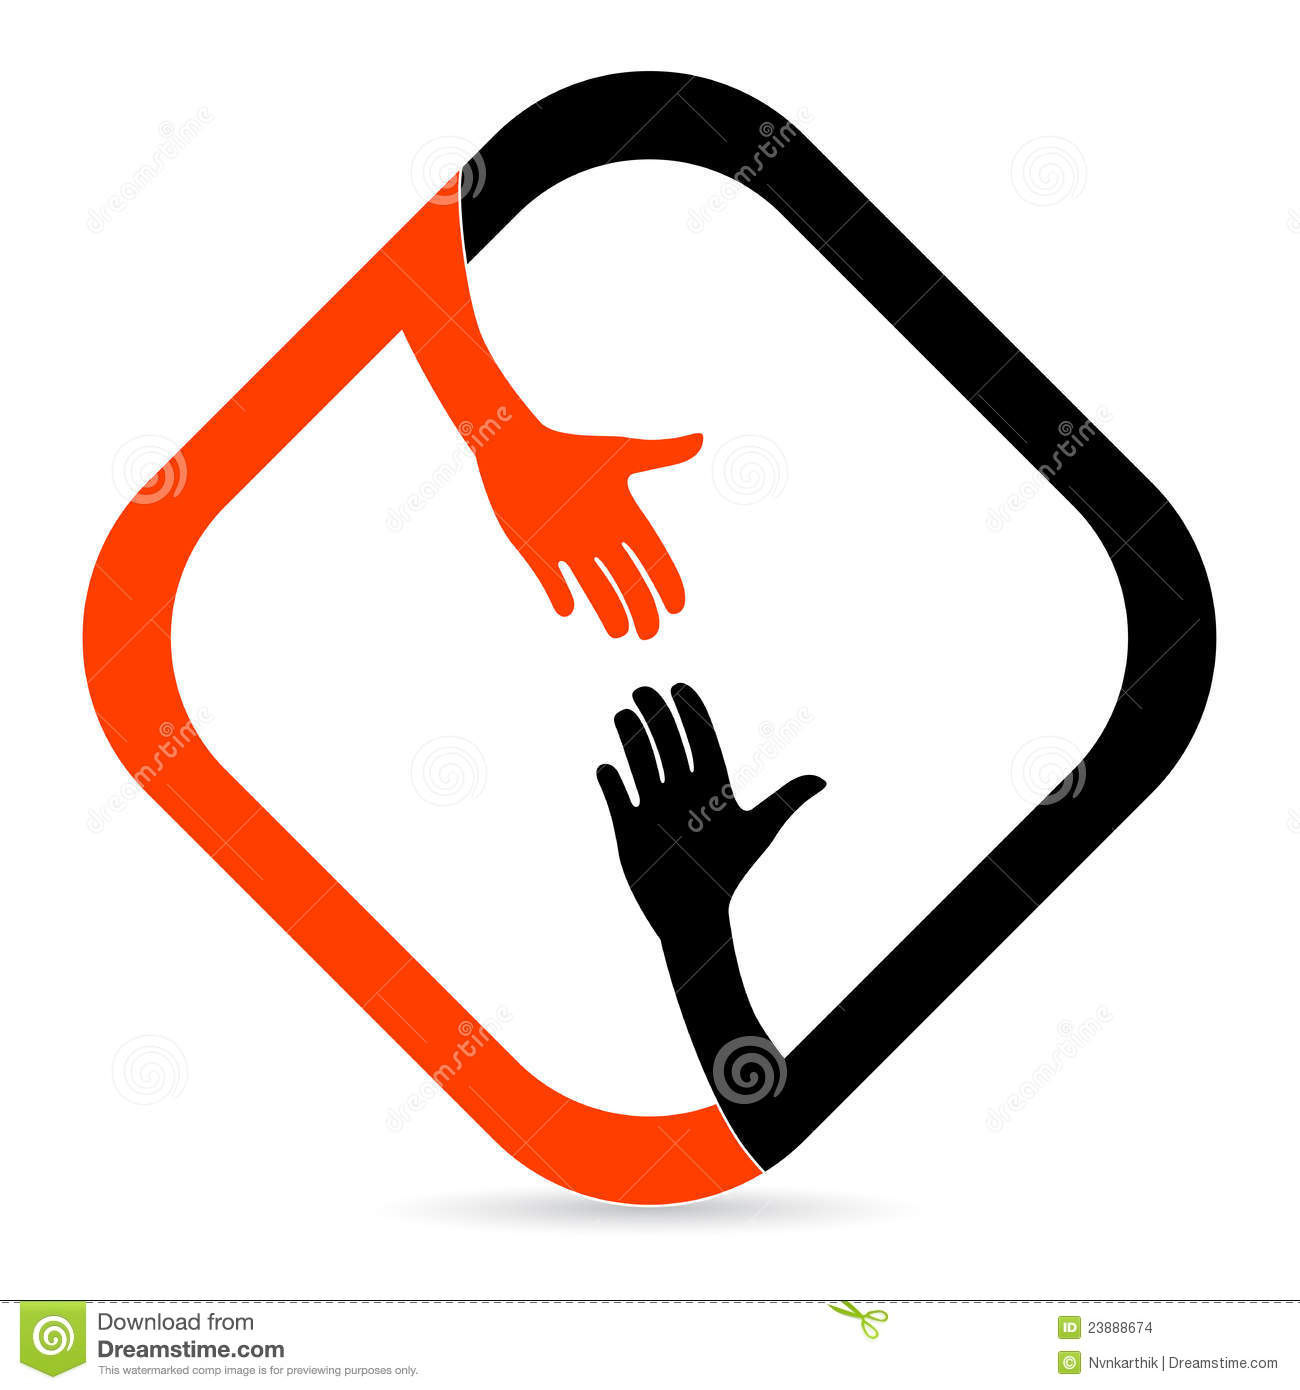 helping hand stock vector illustration of couple contract 23888674 rh dreamstime com helping hand clip art free helping hands clip art pictures